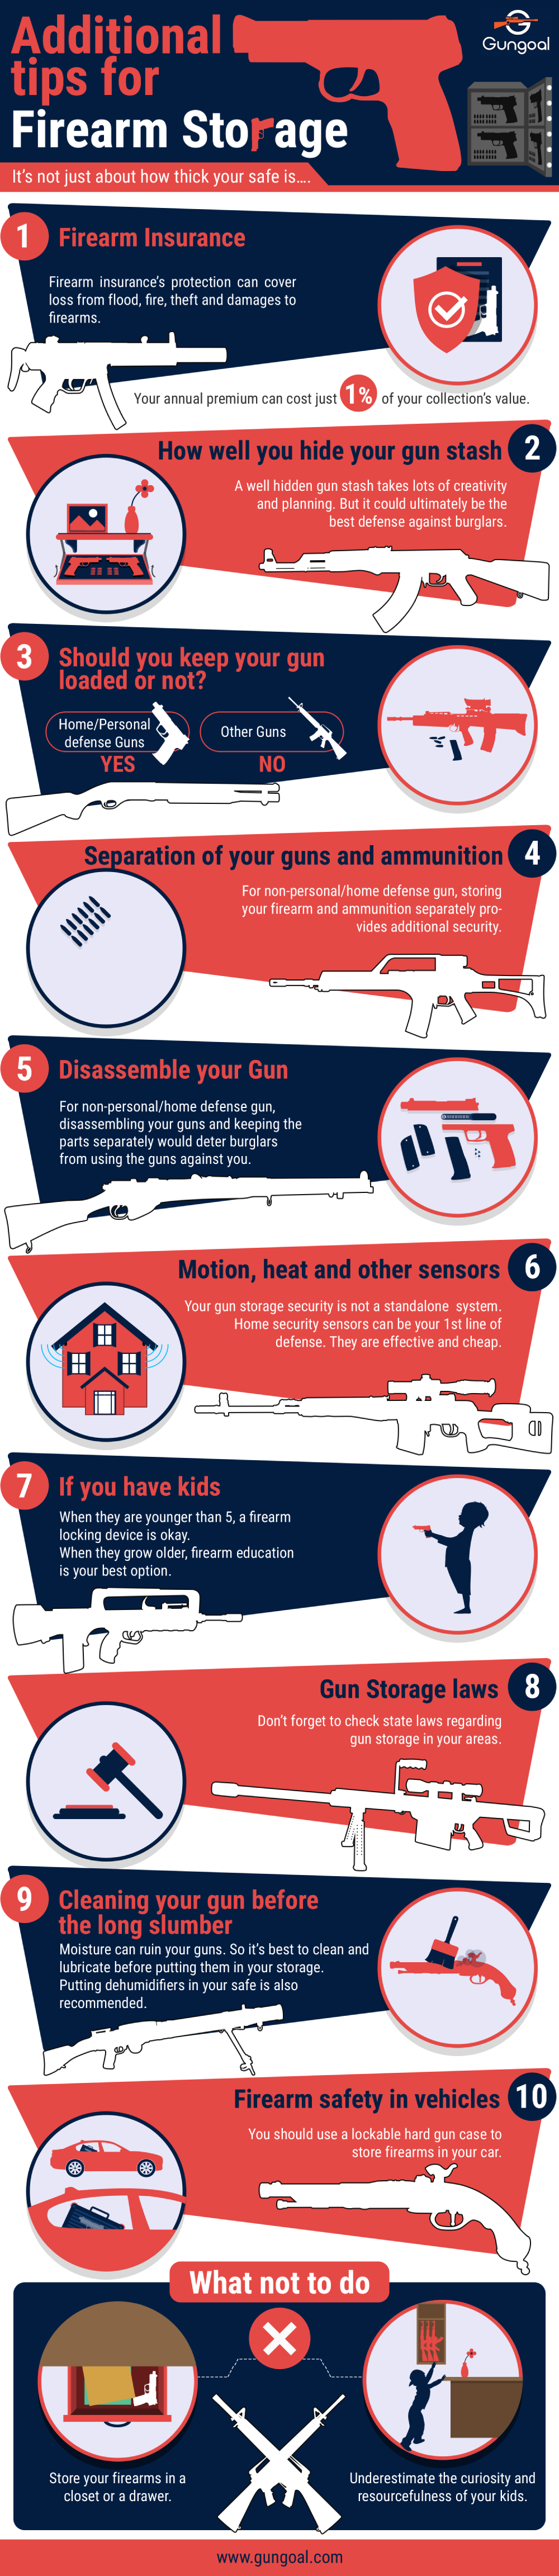 Infographic on Additional tips for firearm storage